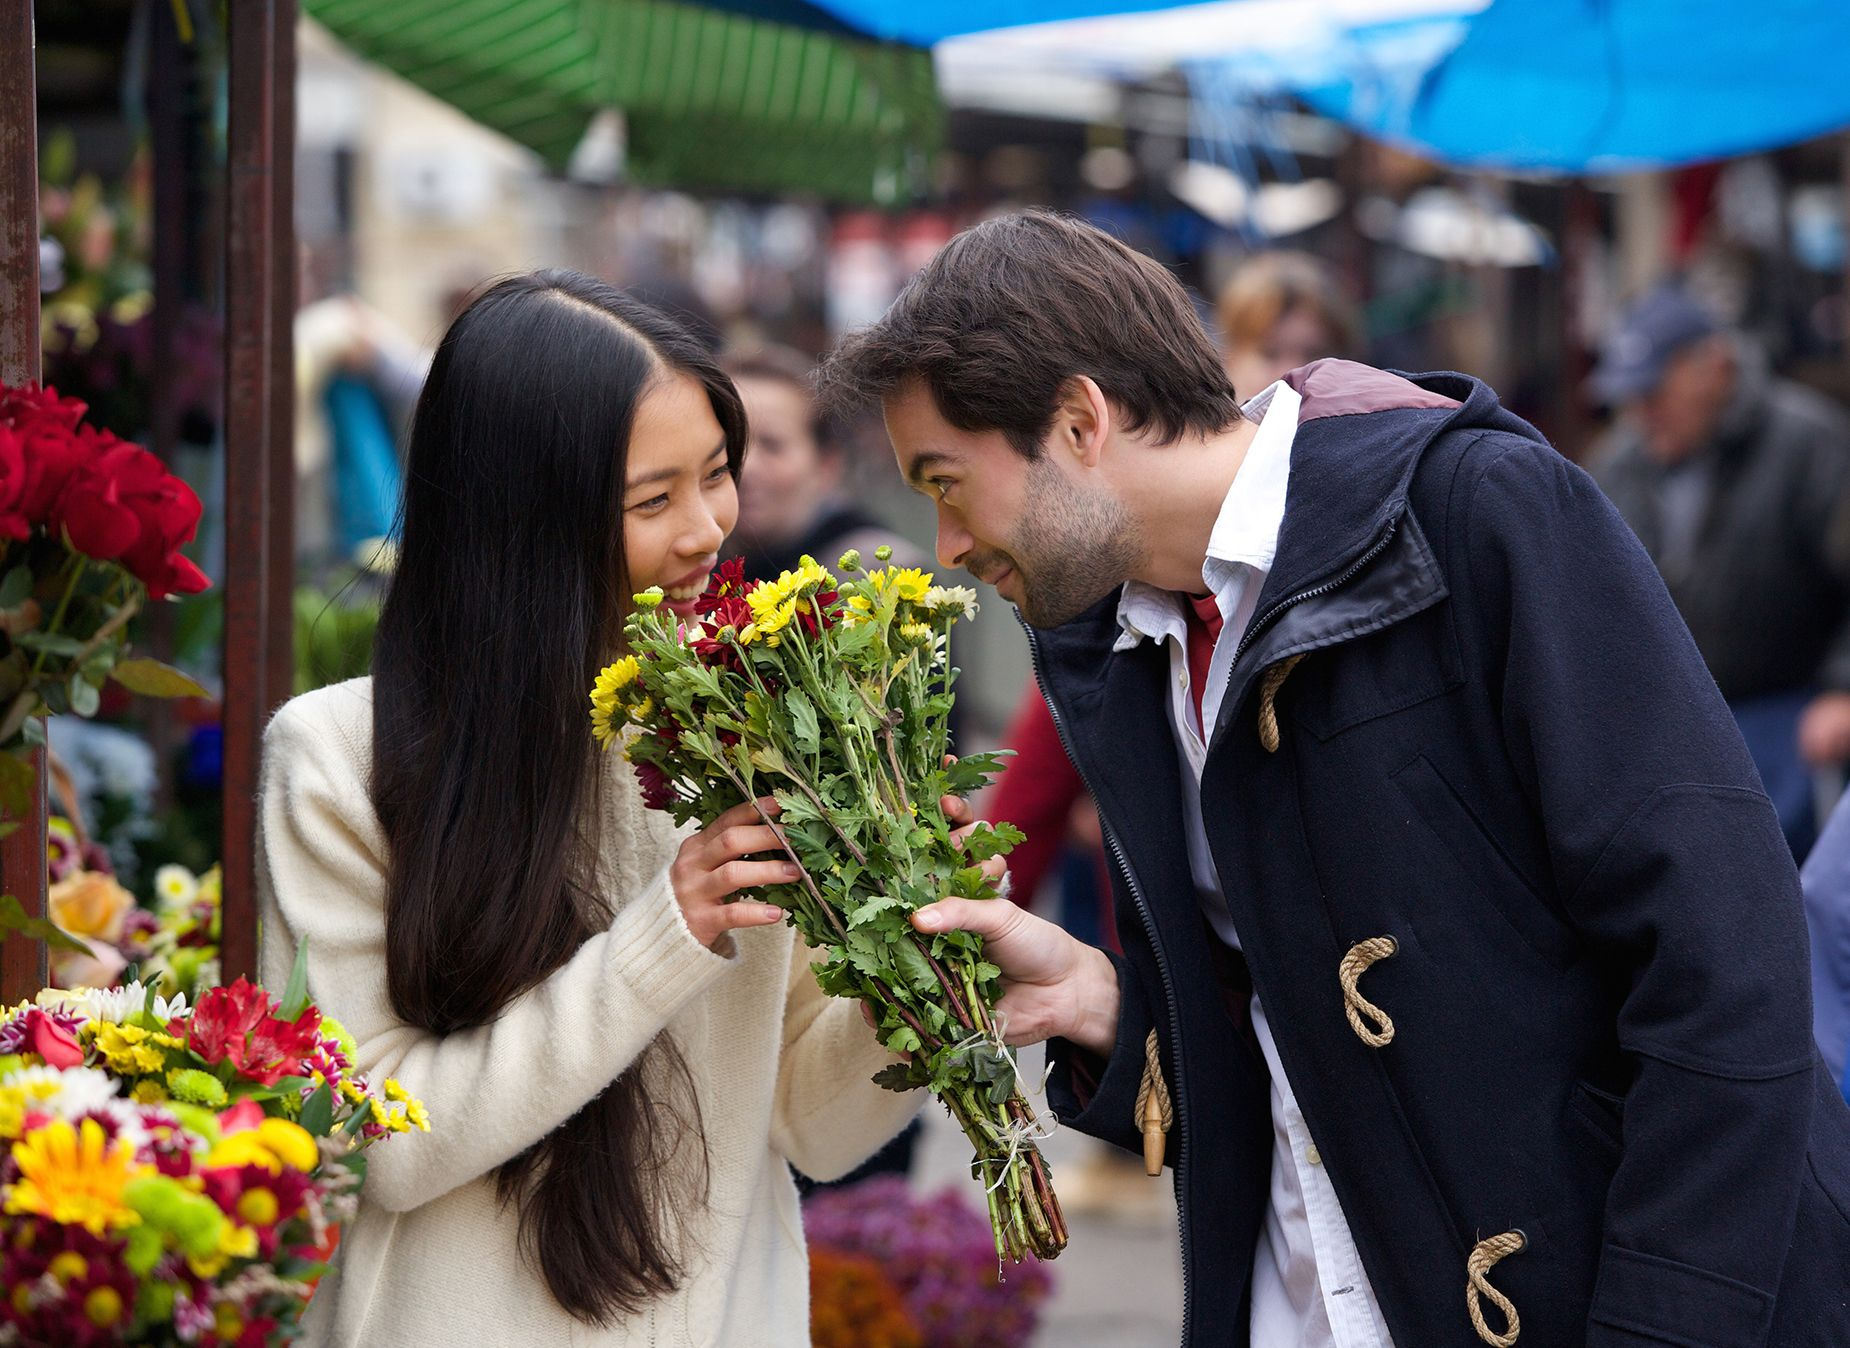 Dating etiquette quiz questions